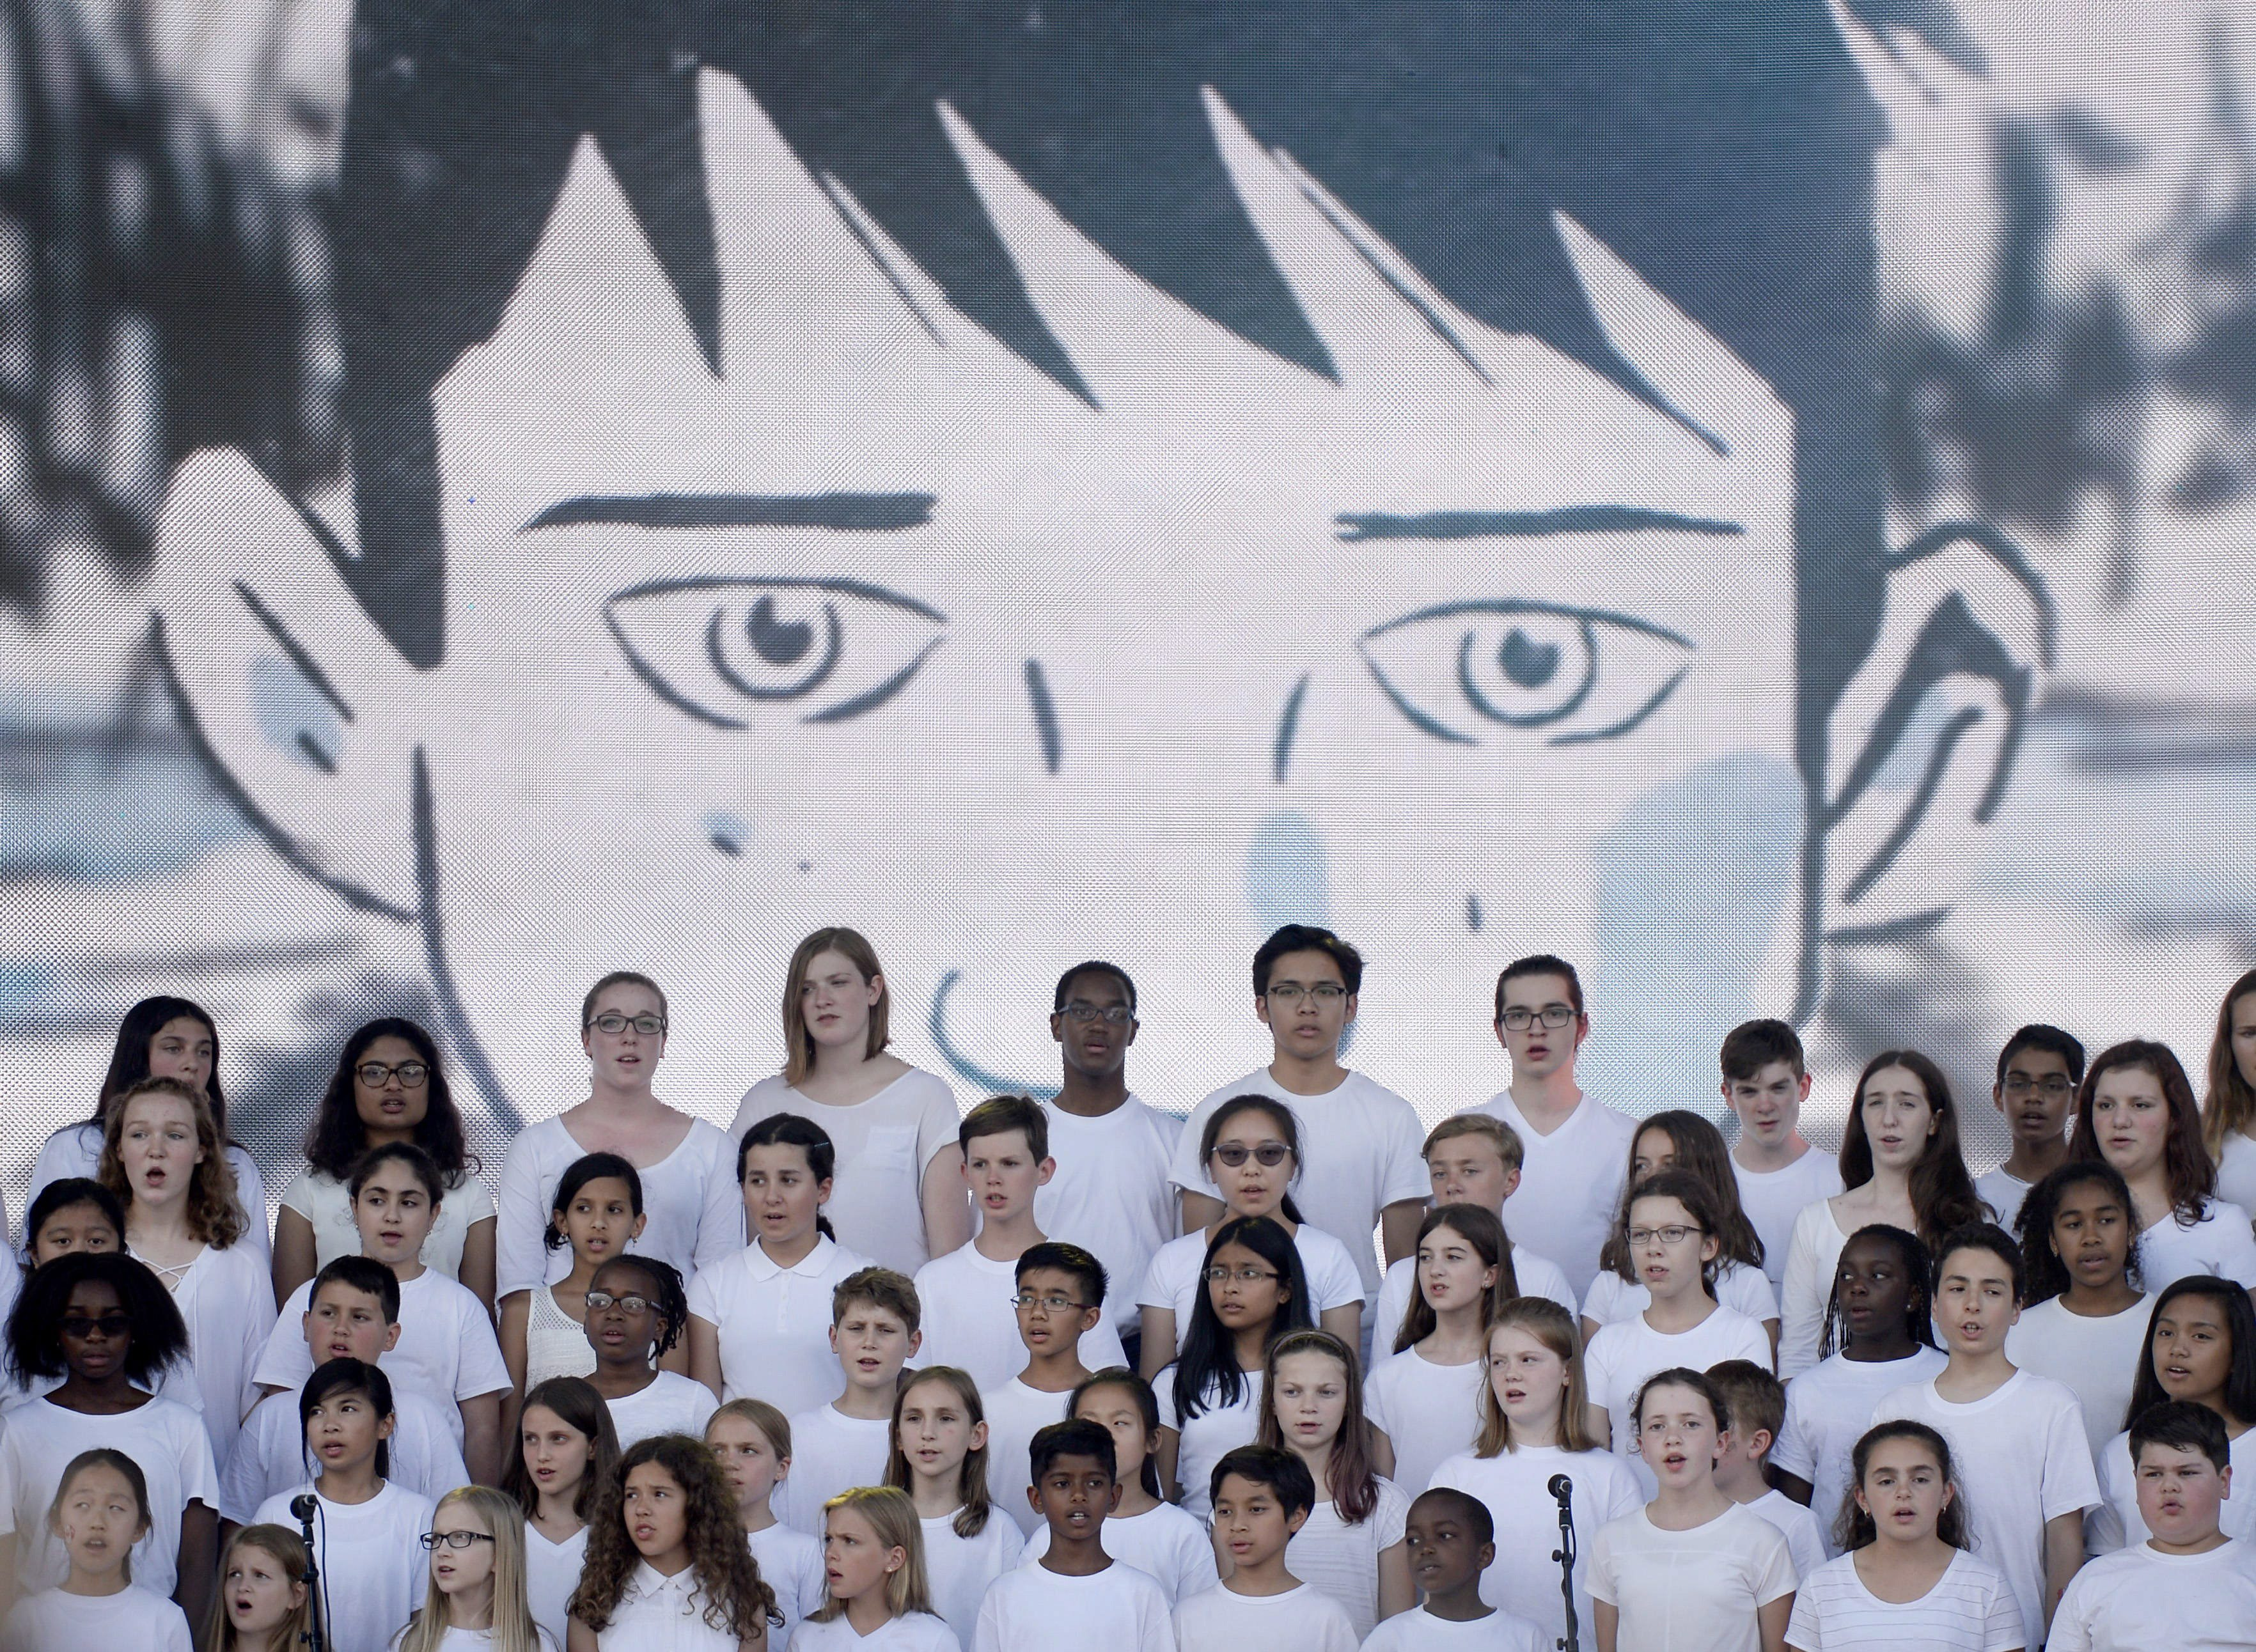 The Ottawa Children's Choir performs Tragically Hip frontman Gord Downie's song The Stranger at We Day...